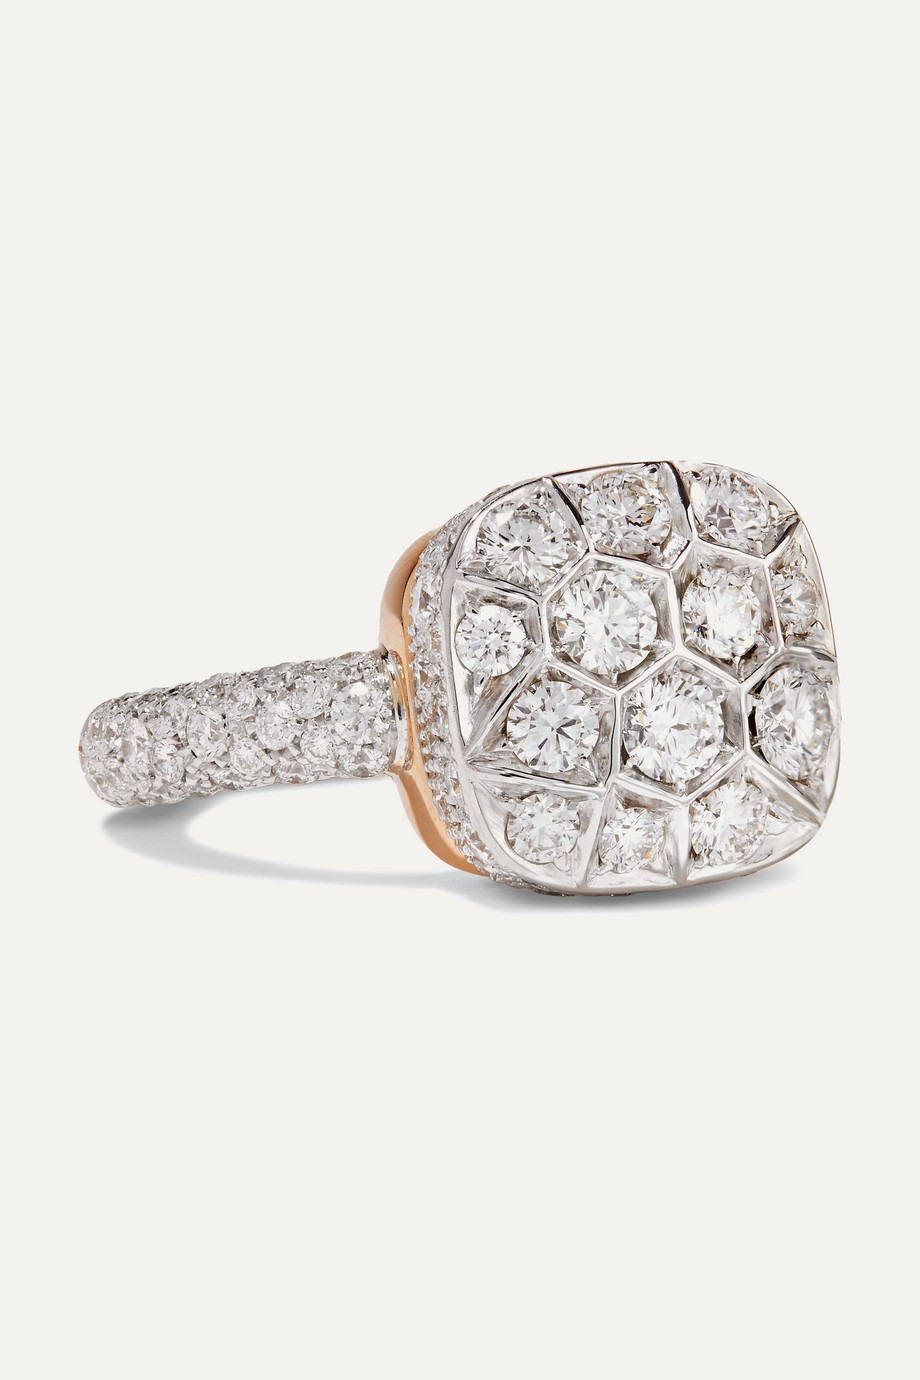 POMELLATO Nudo 18-karat rose and white gold diamond ring